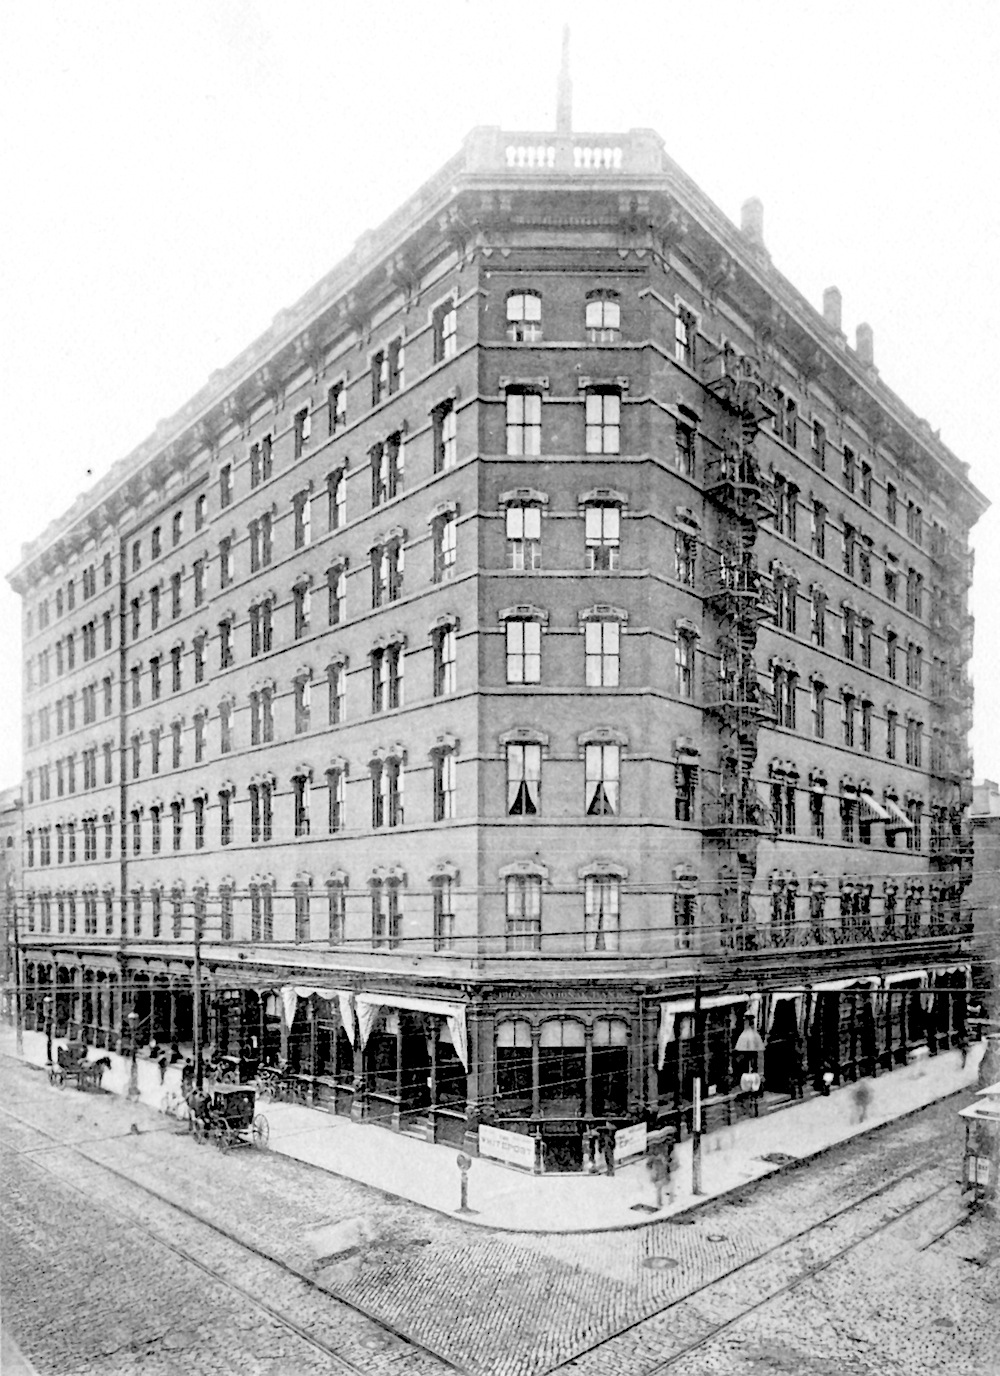 Another image of the Narragansett Hotel, with the bank's ground floor corner office.